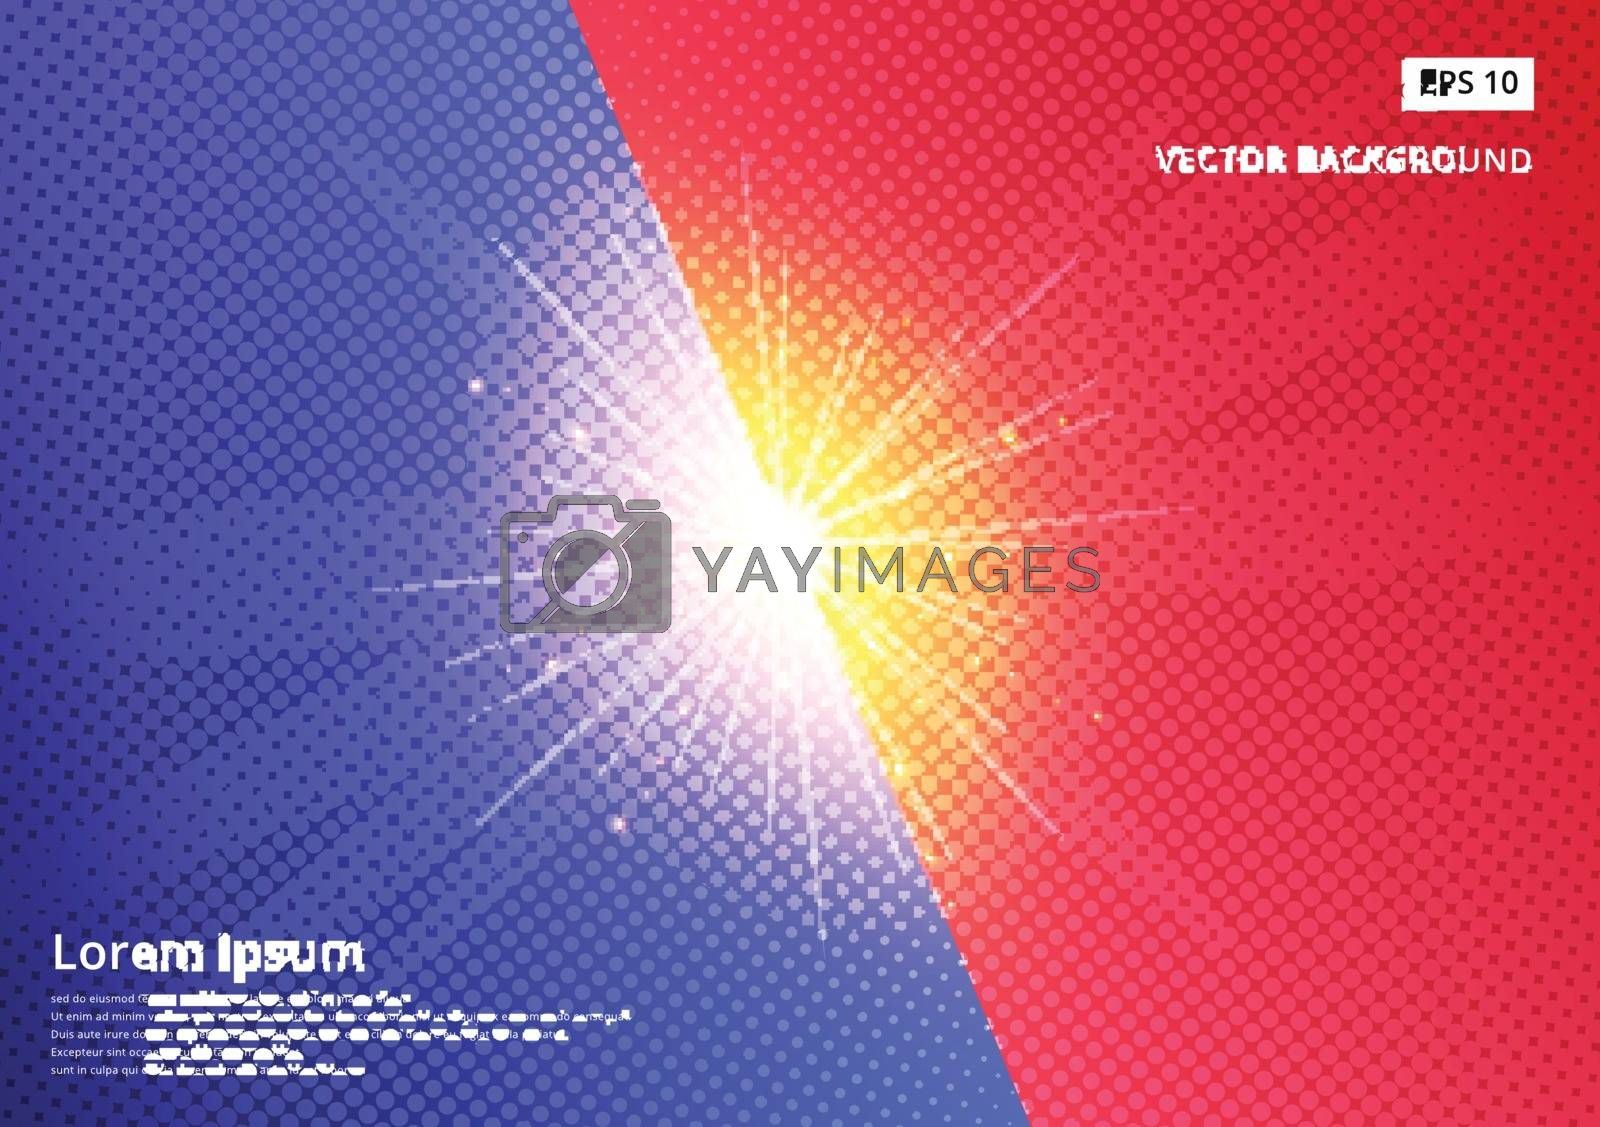 Blue and red halftone vector background image With the sparkling out